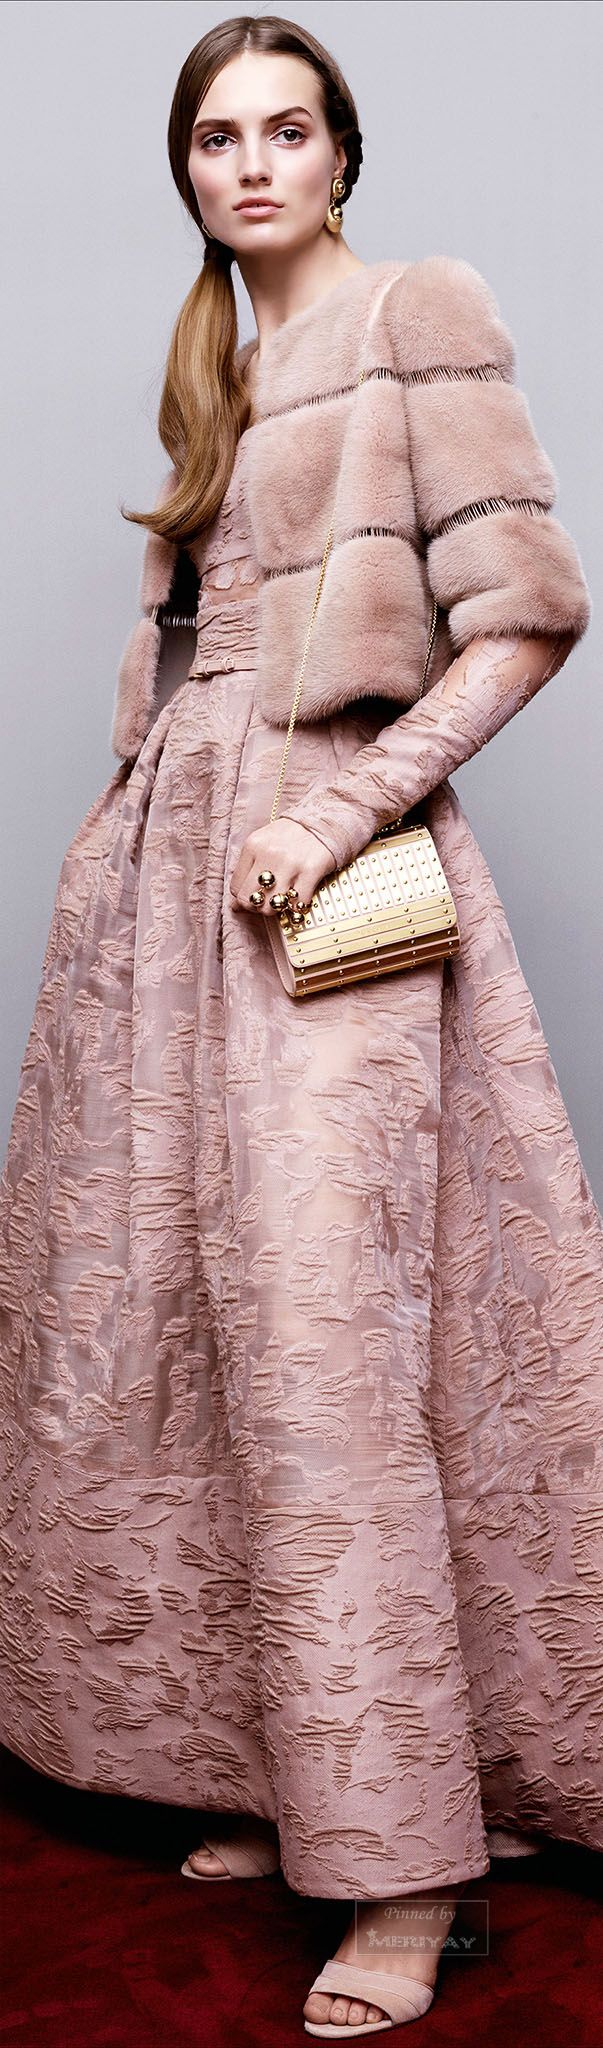 "Elie Saab Pre-Fall 2015 -- Delicate pink and pink fur (or faux?). Very nice and classy and Vic Challenger would say 'wrap it up, I'll take it!"" http://www.vicplanet.com"